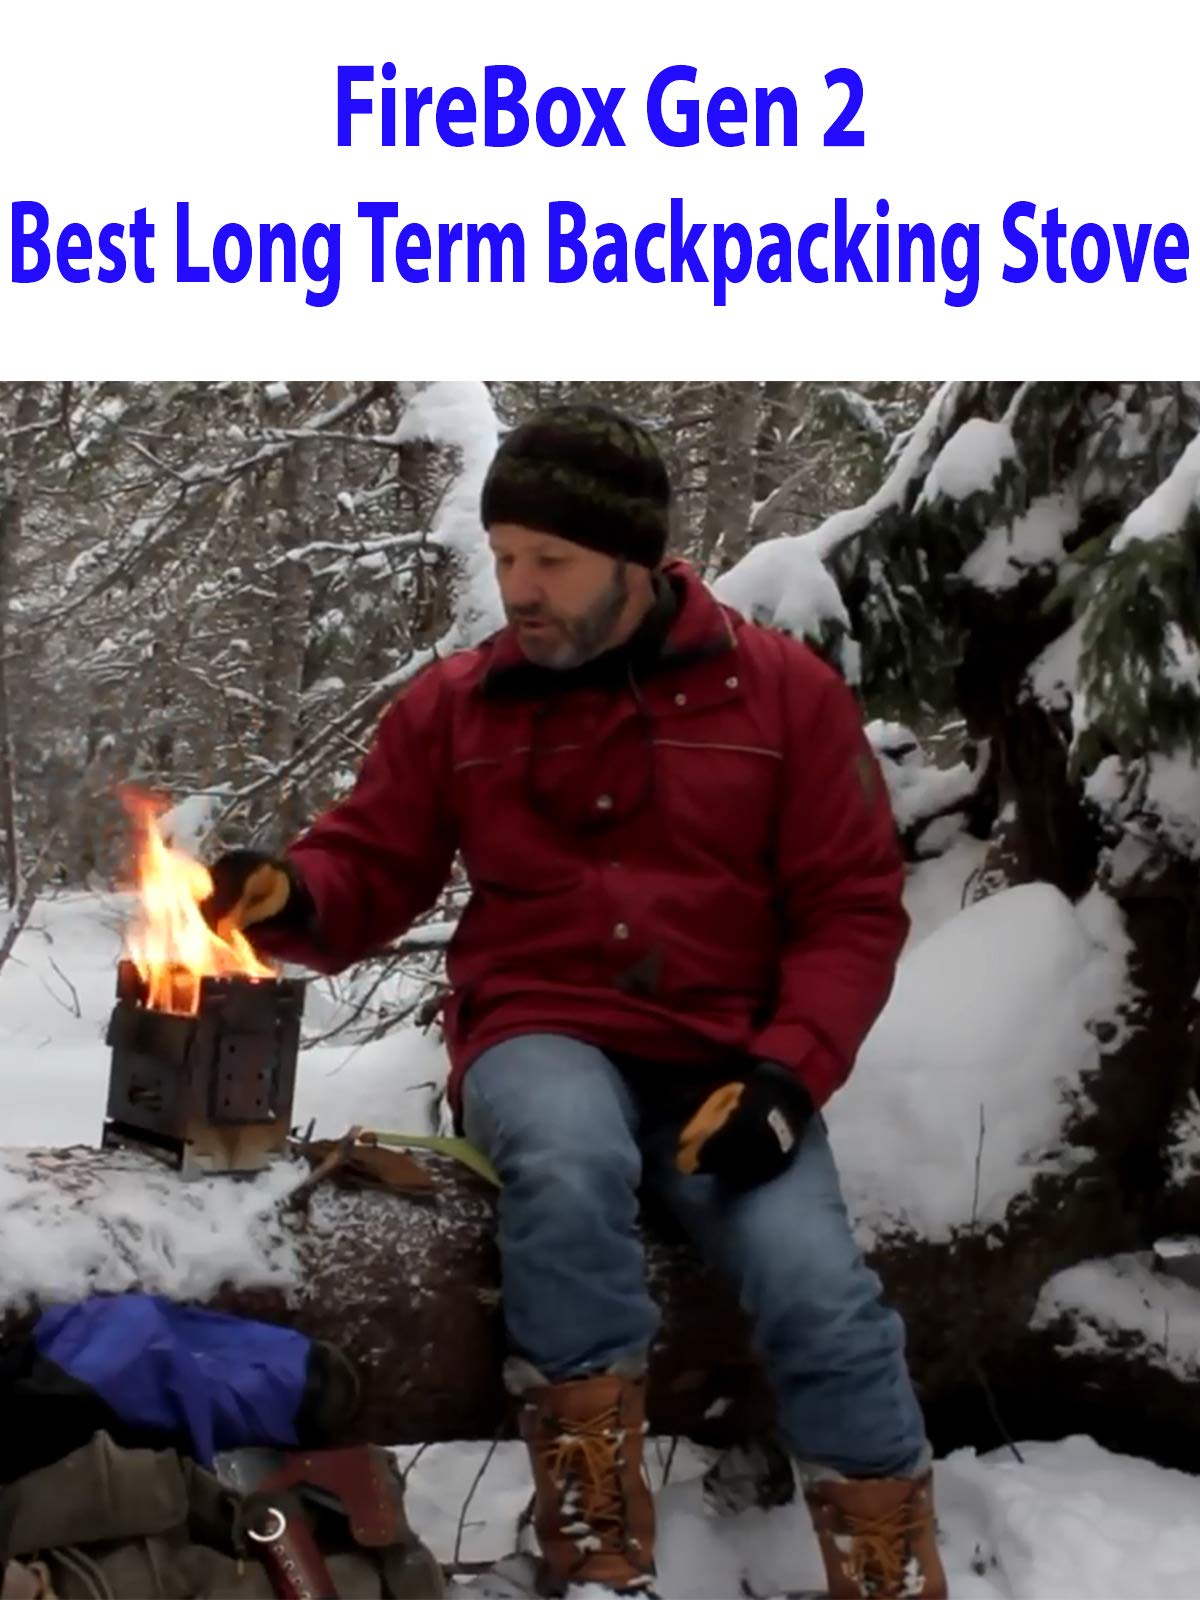 FireBox Gen 2 - Best Long Term Backpacking Stove